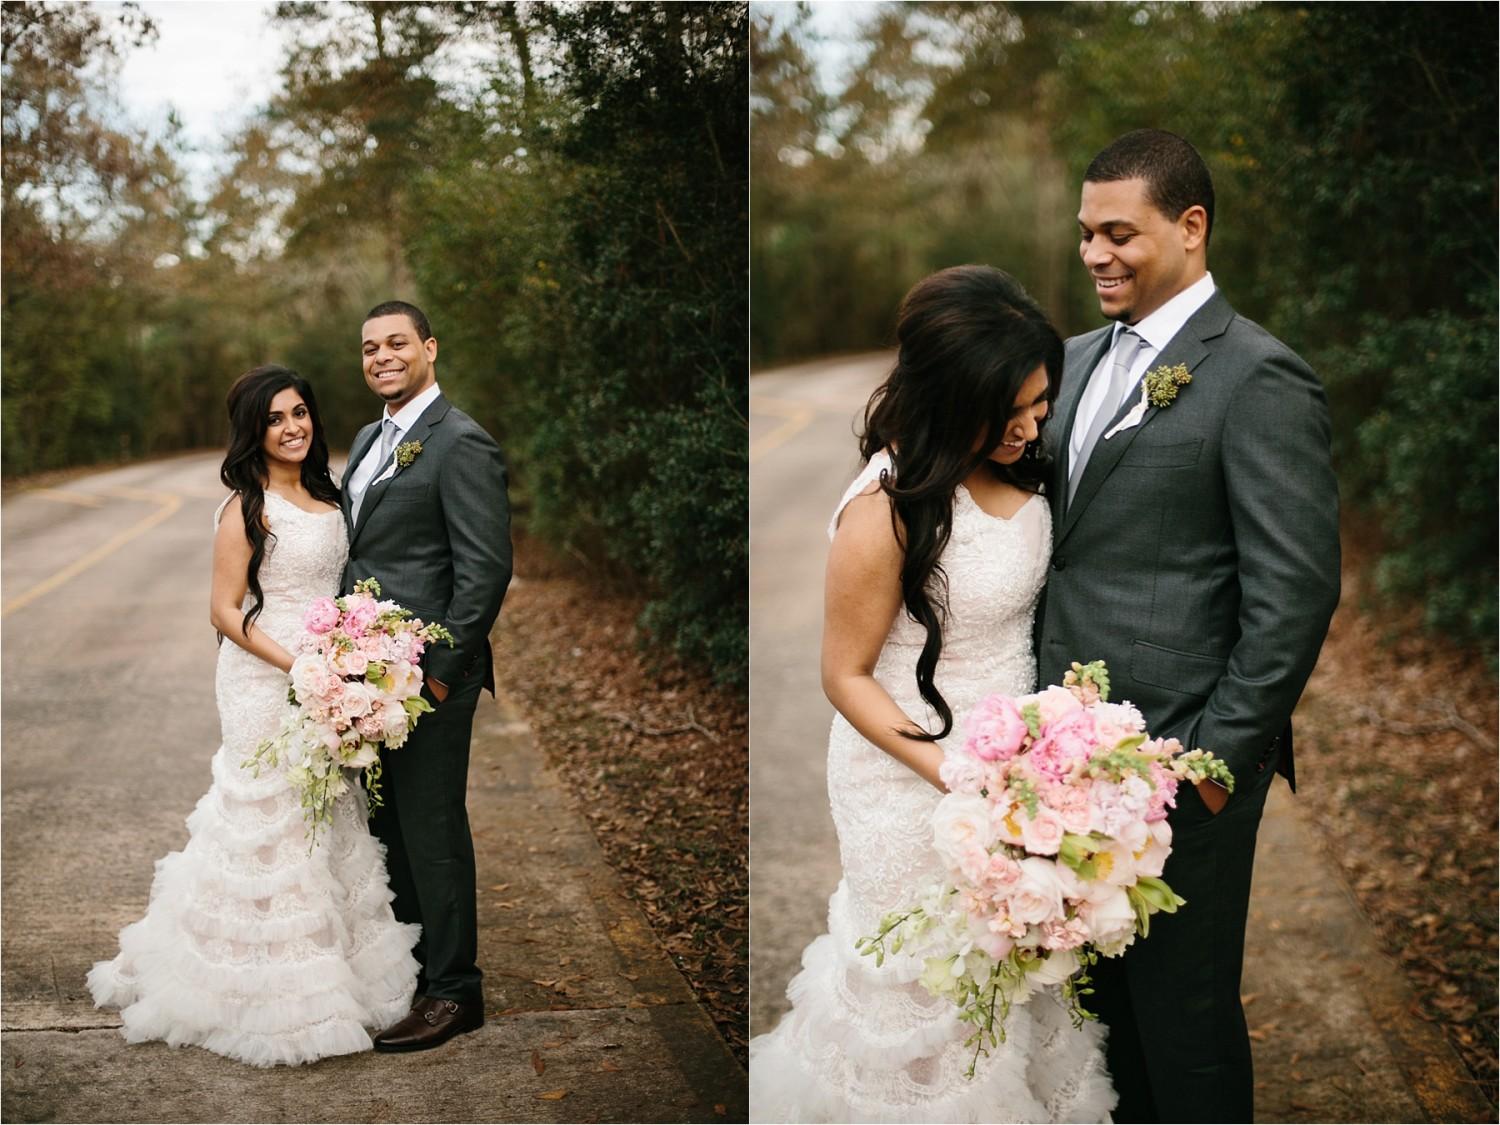 Jeanpaul + Ann __ a colorful wedding at Ashton Gardens in Houston TX by North Texas Wedding Photographer Rachel Meagan Photography _ 57